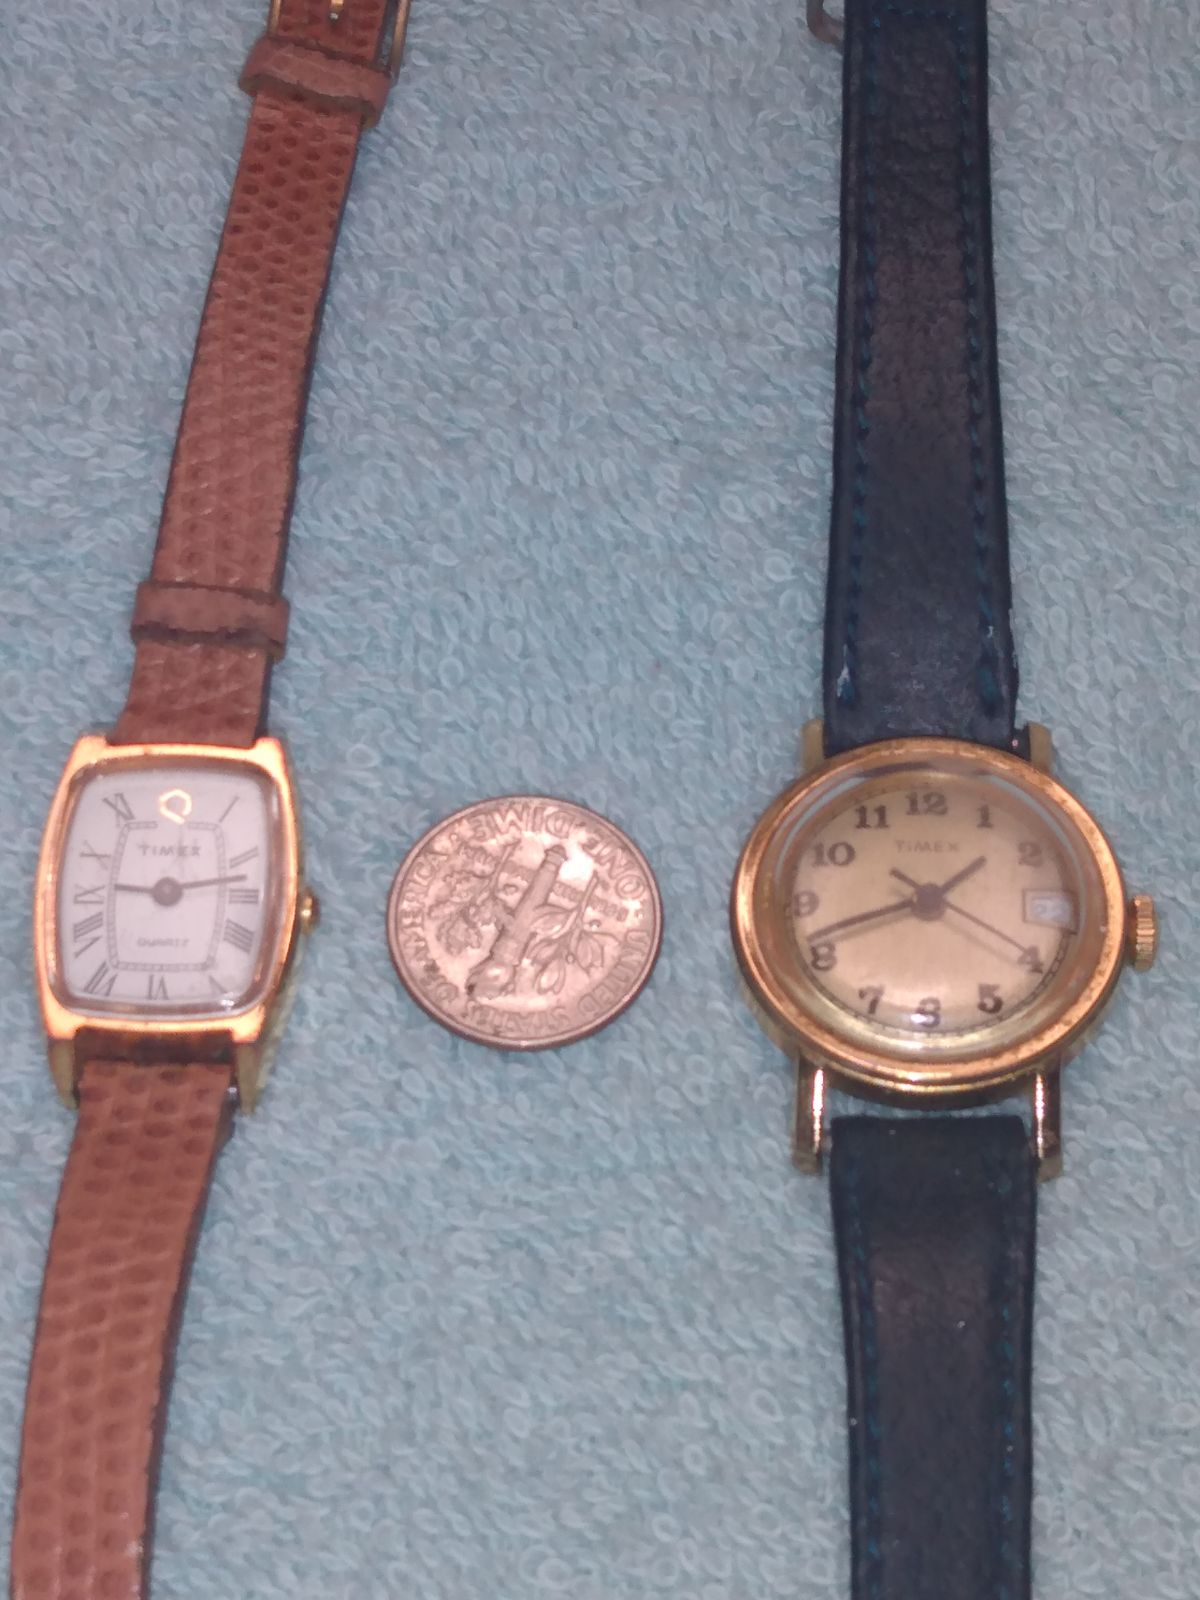 Timex Watches -Two